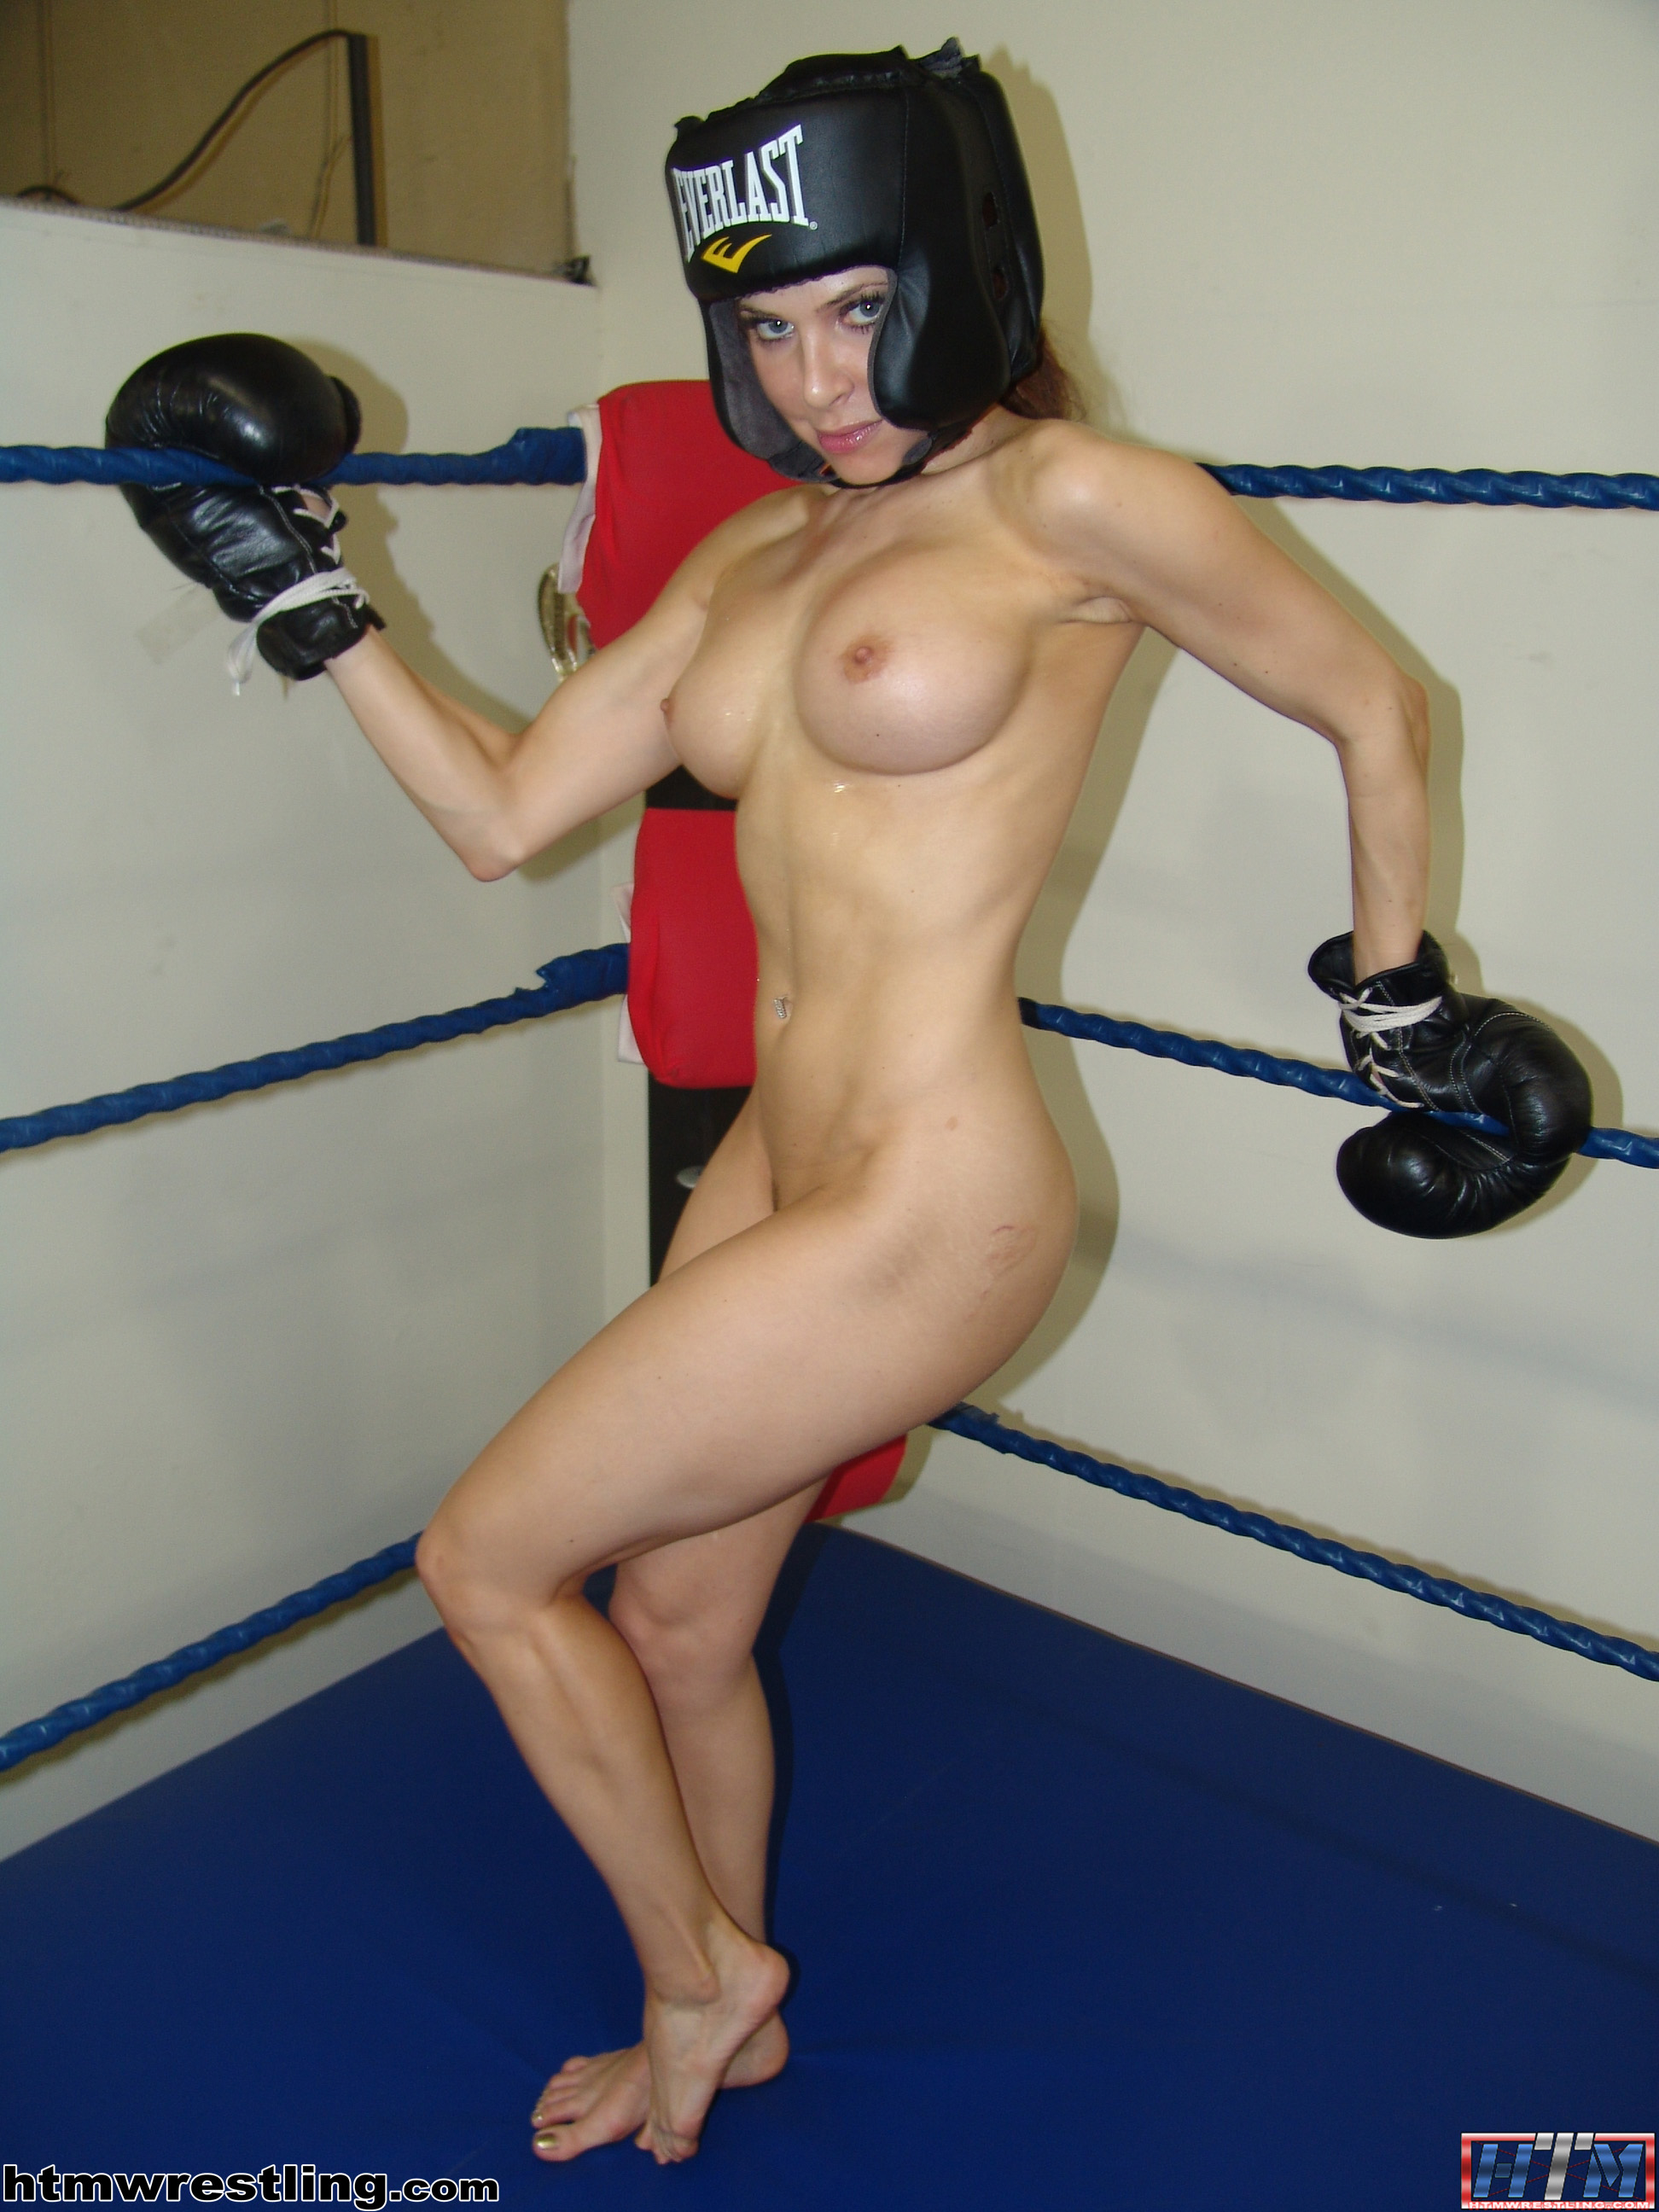 image Scarlett vs goldie topless boxing full requested